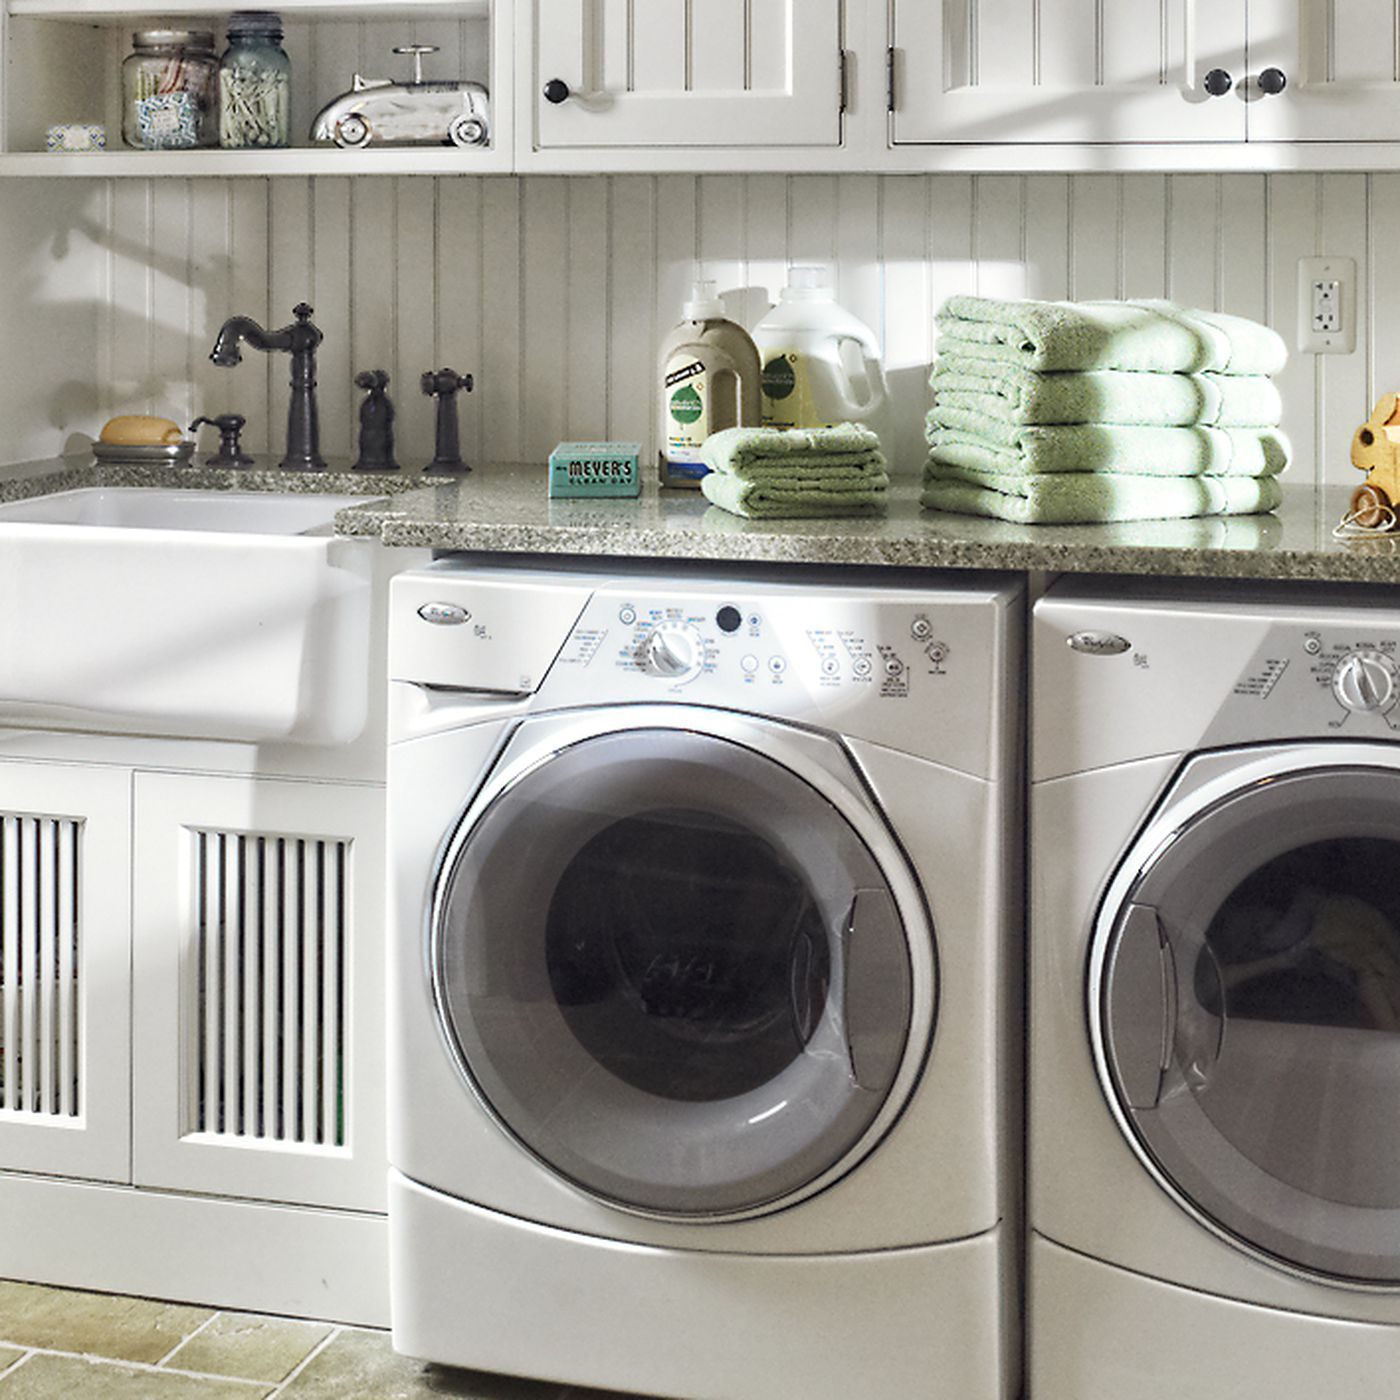 Read This Before You Redo Your Laundry Room This Old House